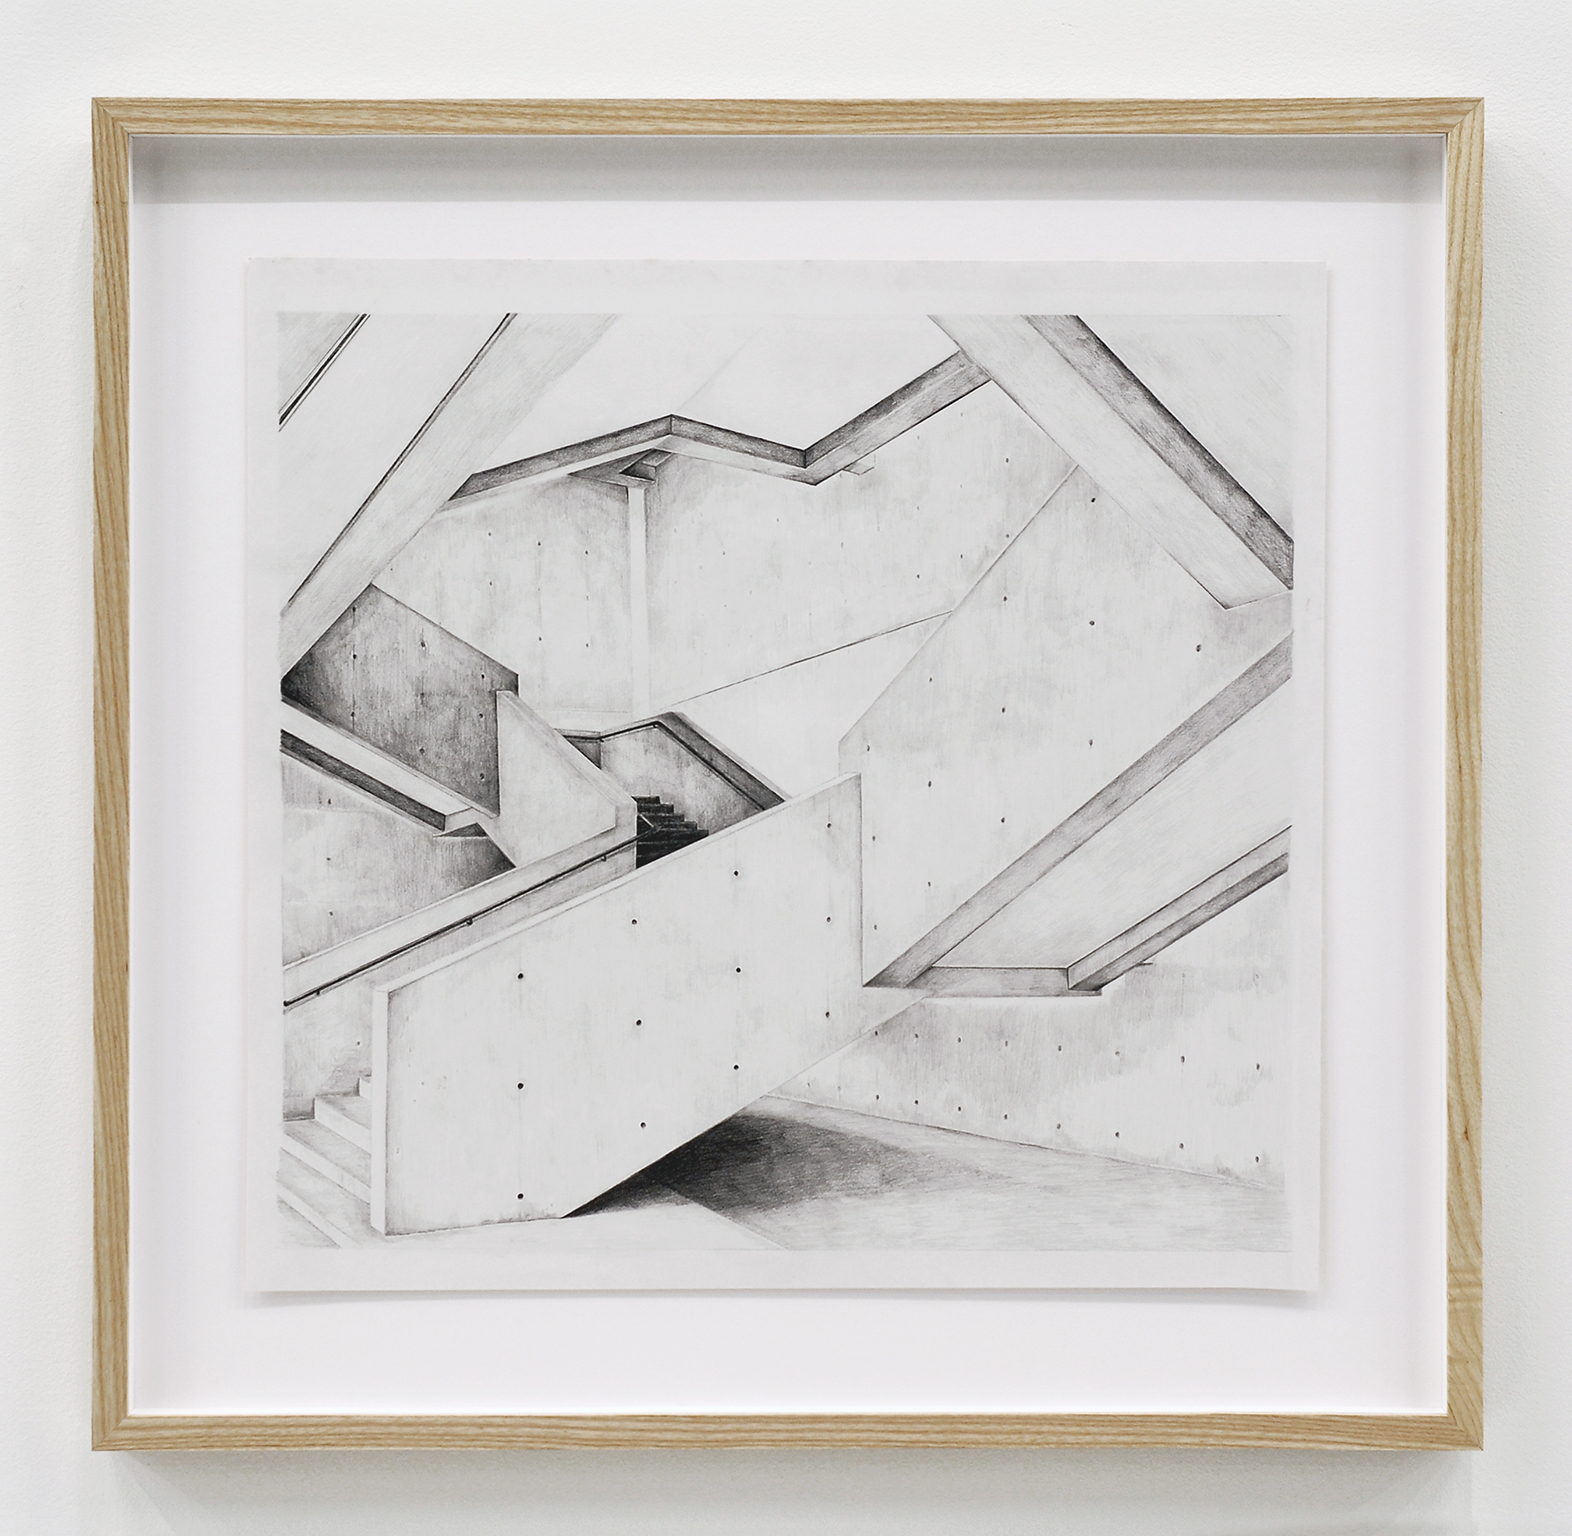 Alex Morrison, The Poetics of Grey (No. 8), 2007, graphite on paper, 23 x 24 in. (59 x 61 cm)   by